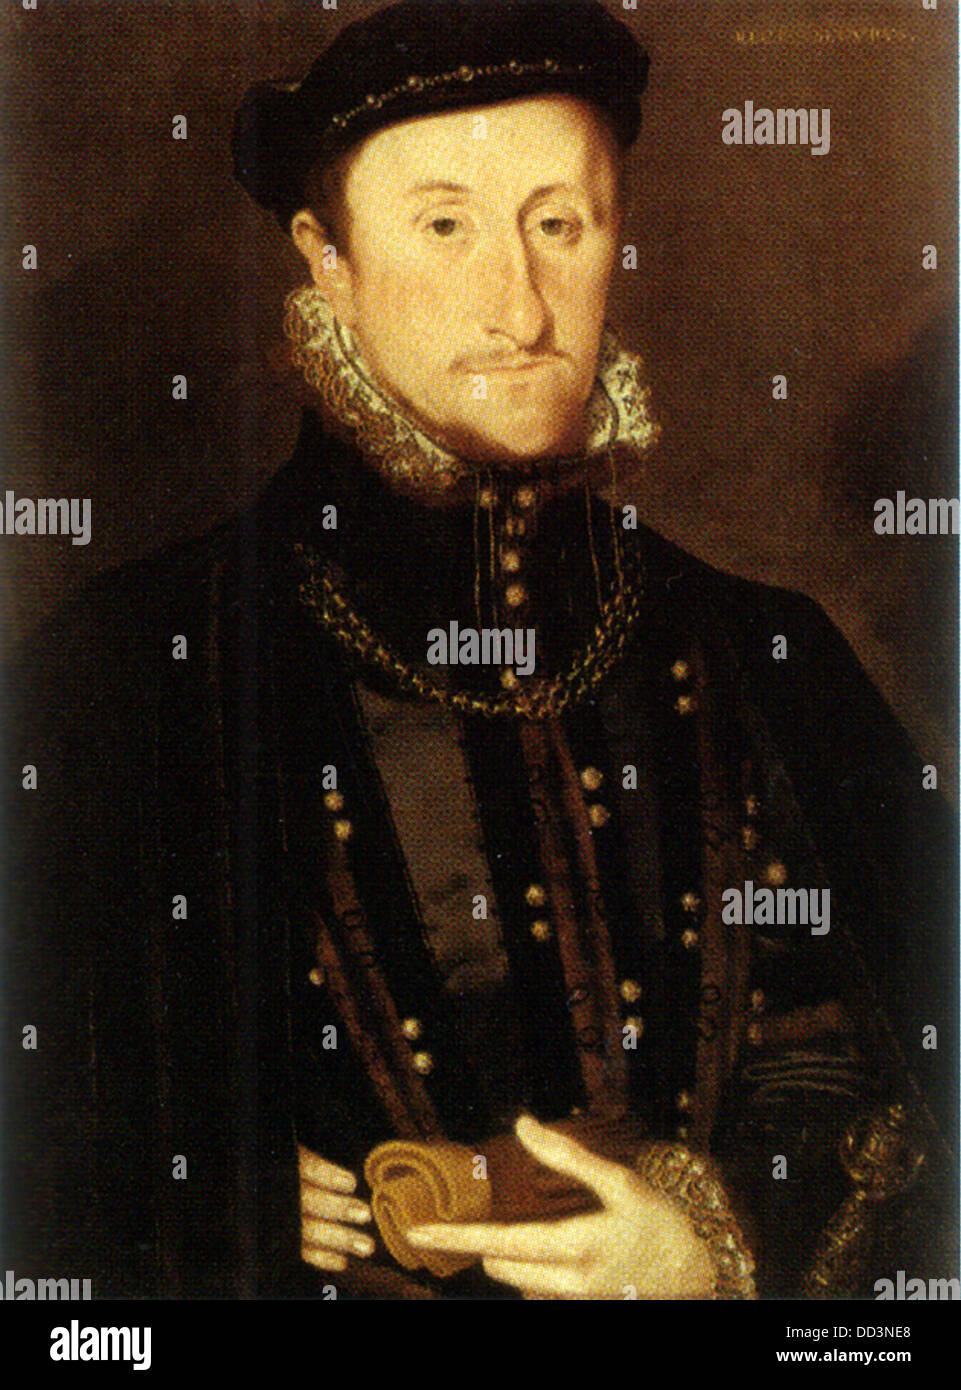 James Stewart, 1st Earl of Moray - Stock Image